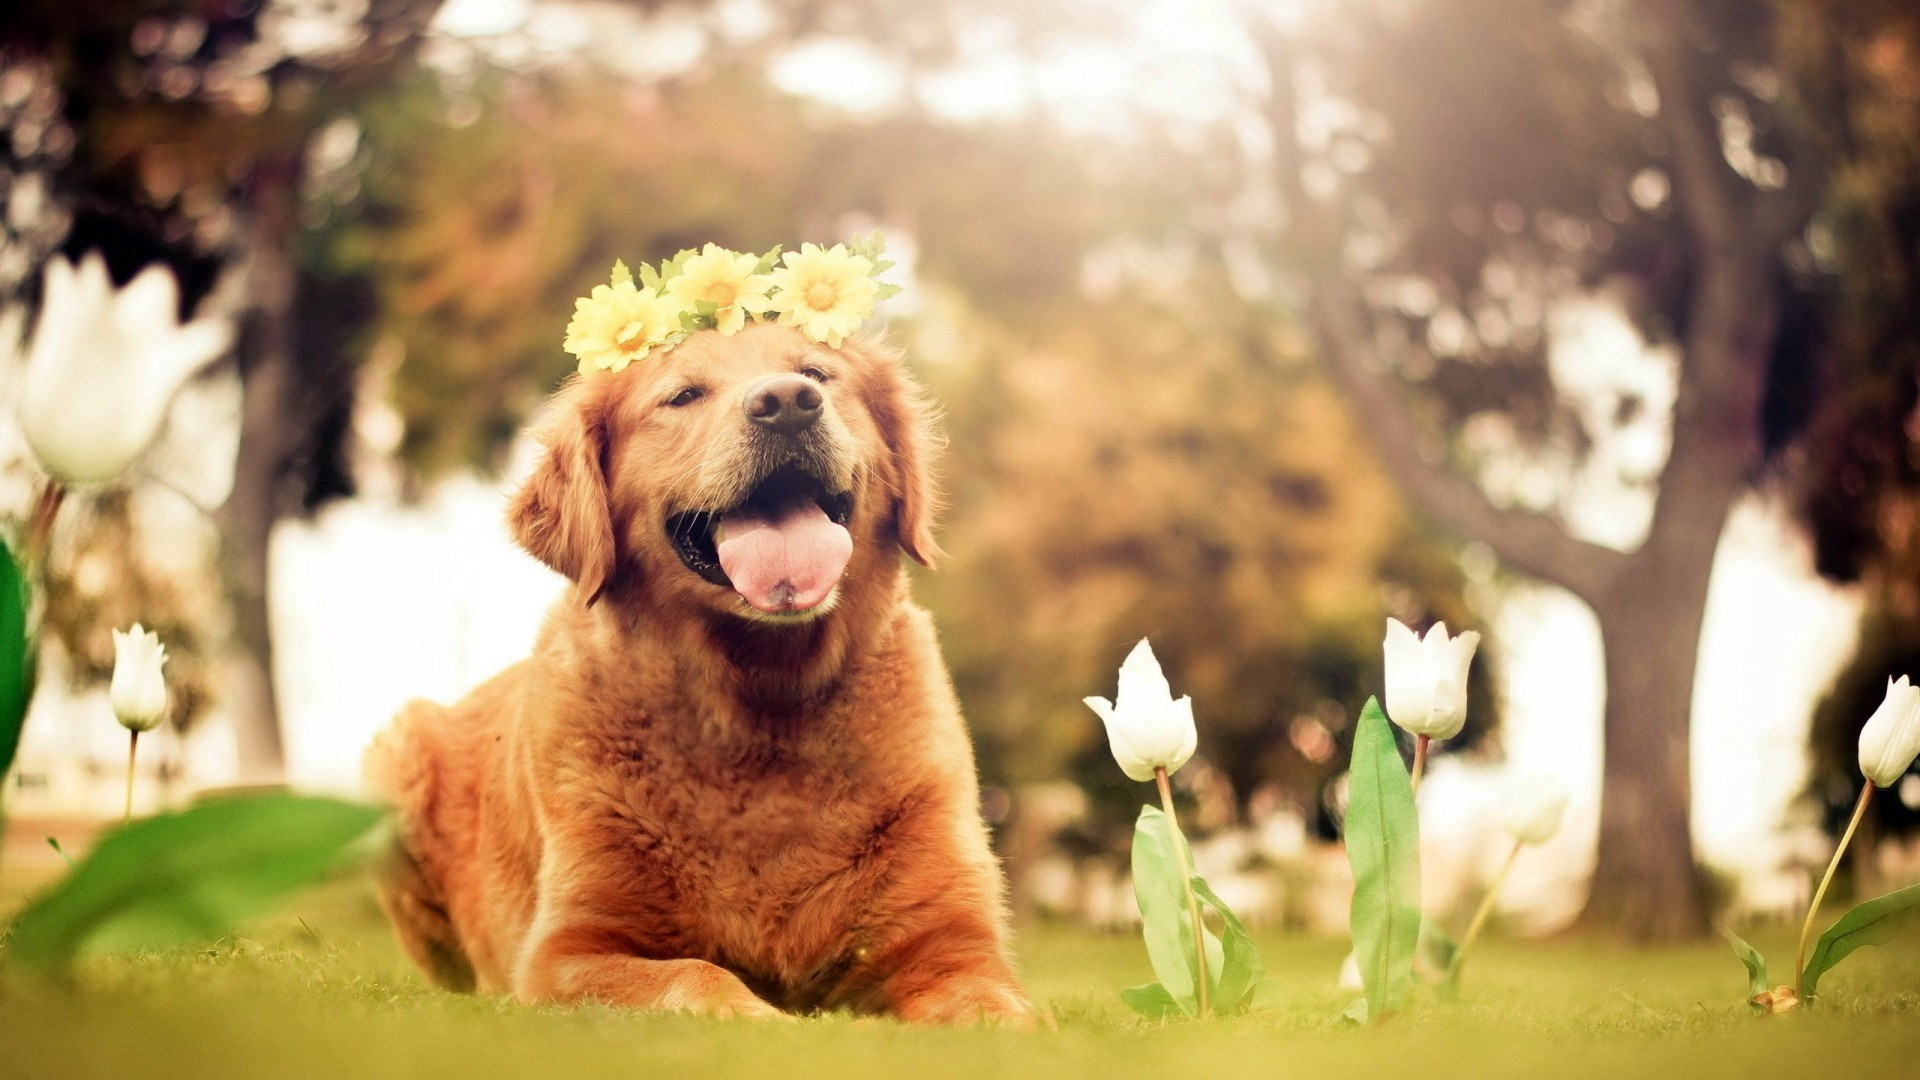 cute dog wallpapers wallpaper 1920x1080